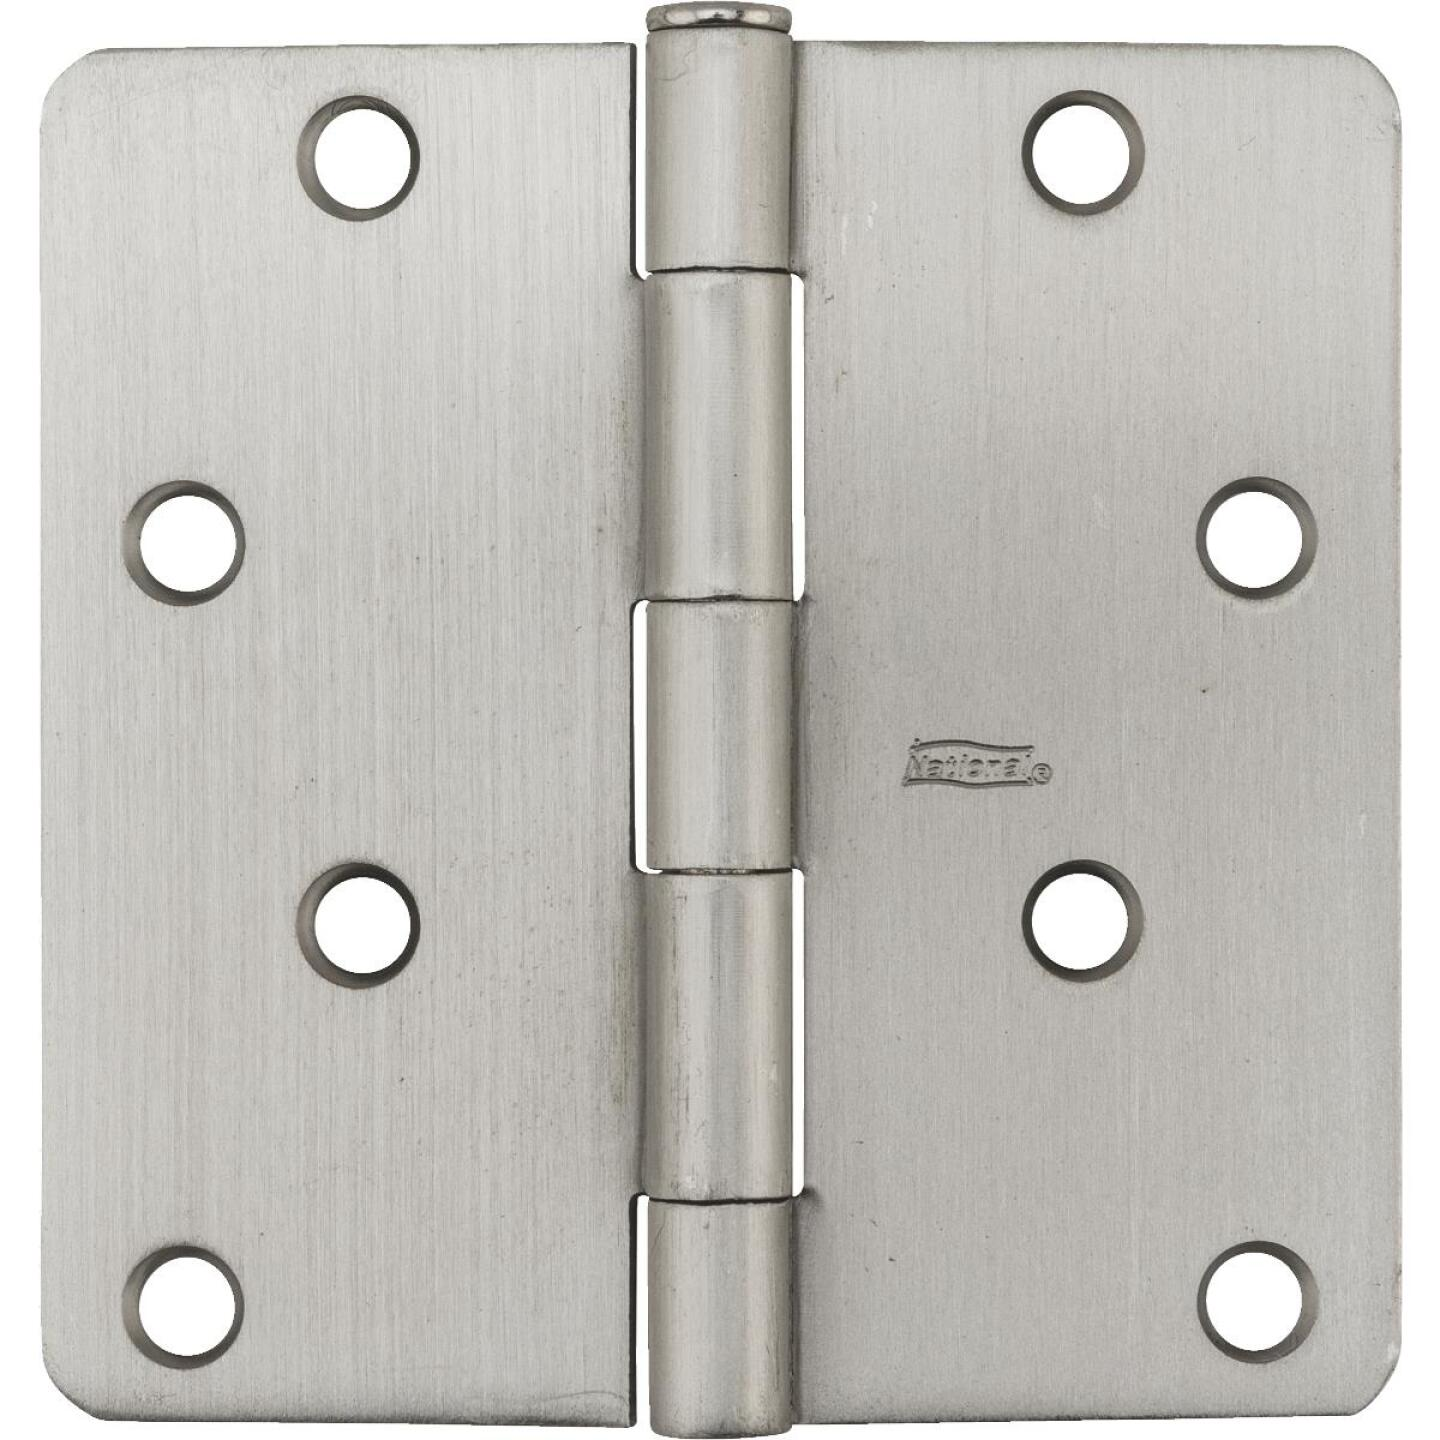 National 4 In. x 1/4 In. Radius Satin Nickel Door Hinge Image 2